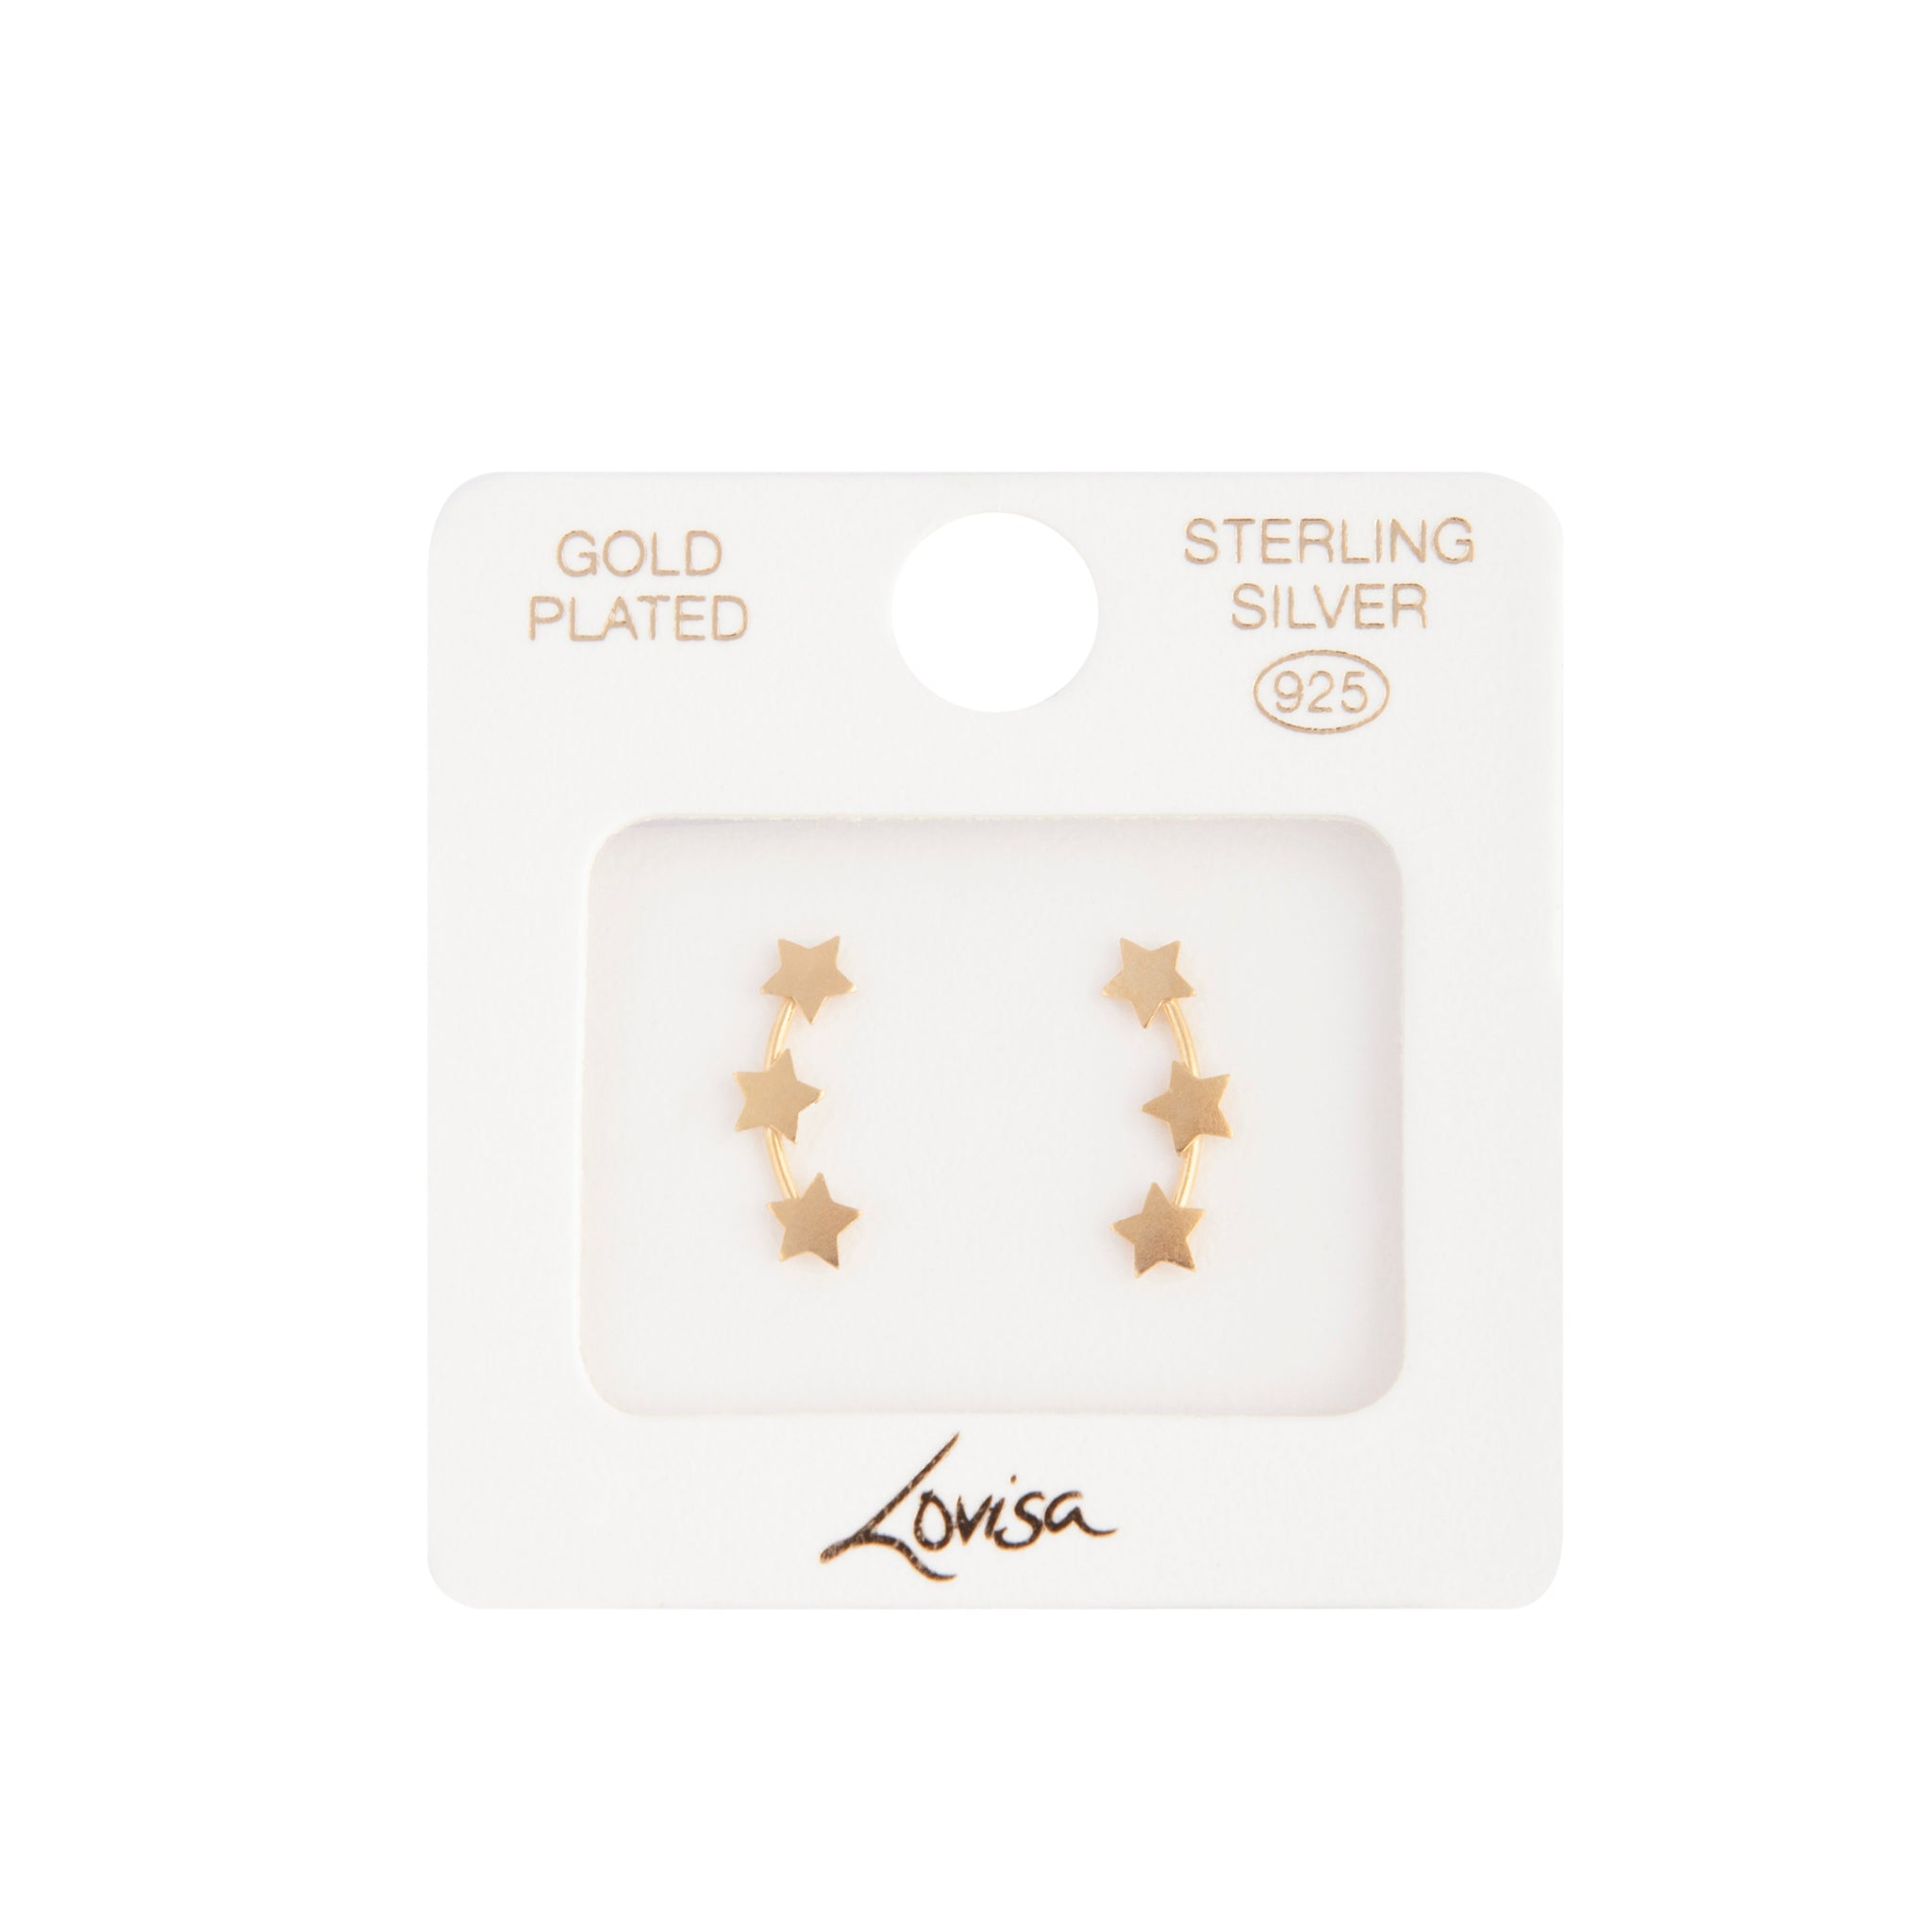 d4a7e7a3a Lovisa Earrings | Lovisa Jewellery Australia | Earring Collection